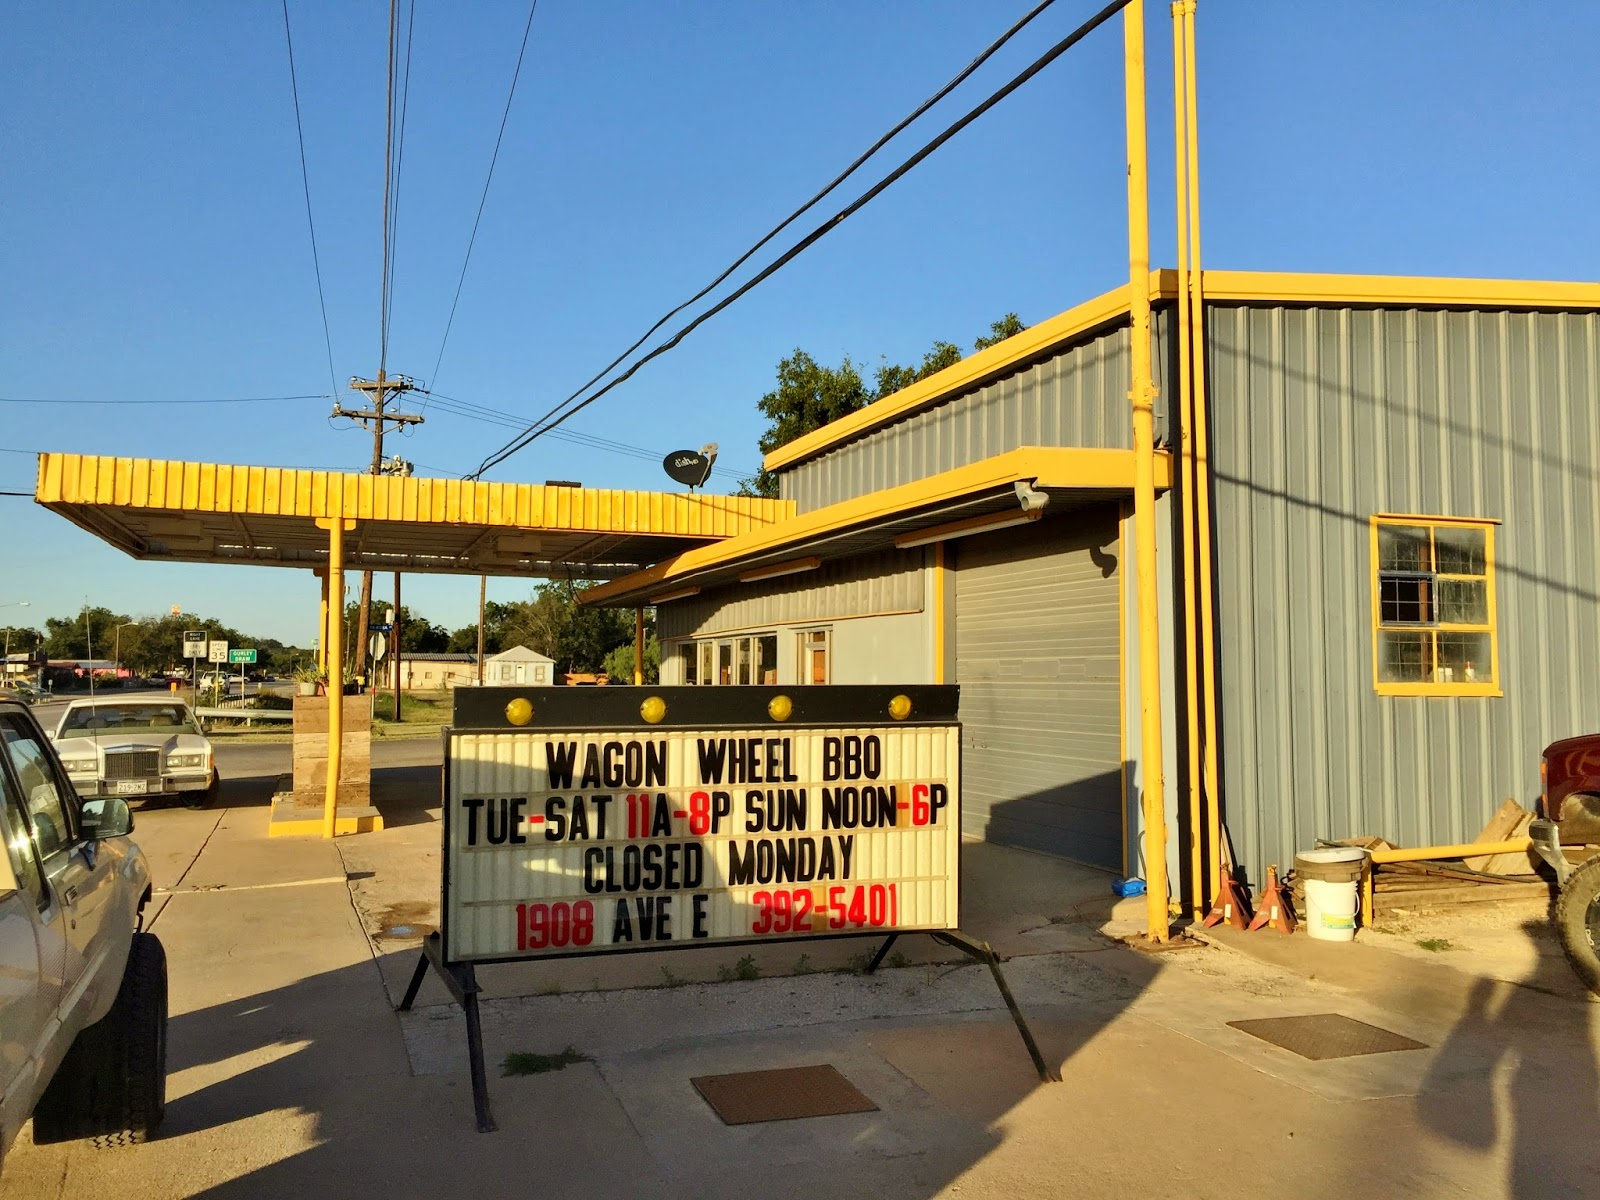 Wagon Wheel BBQ sits in an old Service Station in Ozona.